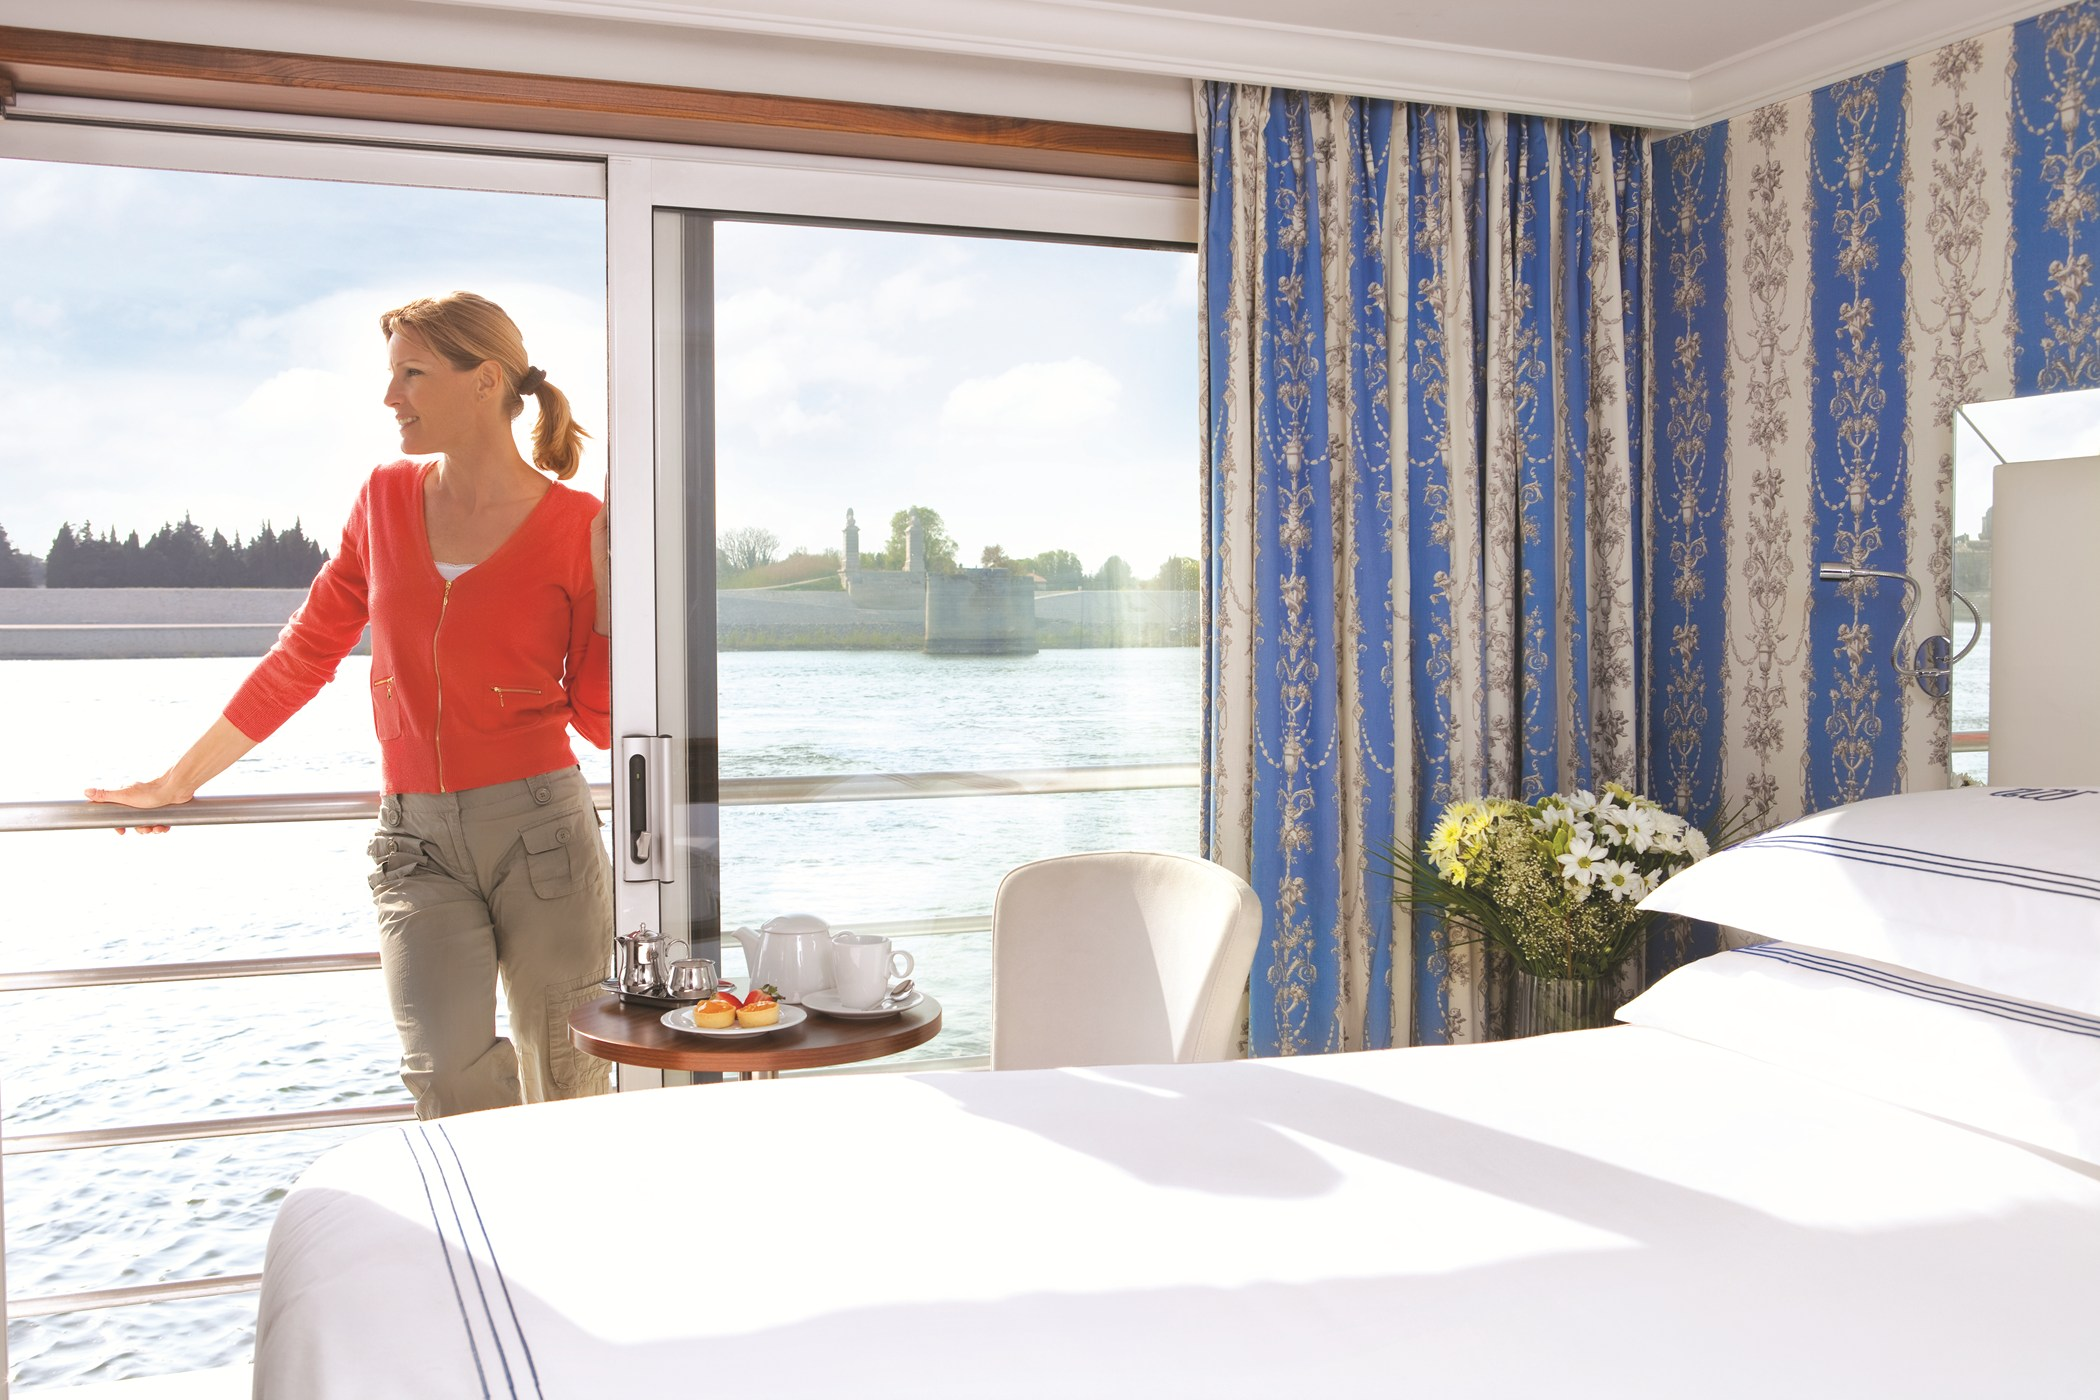 UNIWORLD Boutique River Cruises River Royale Accommodation Stateroom Category 1 2.jpg